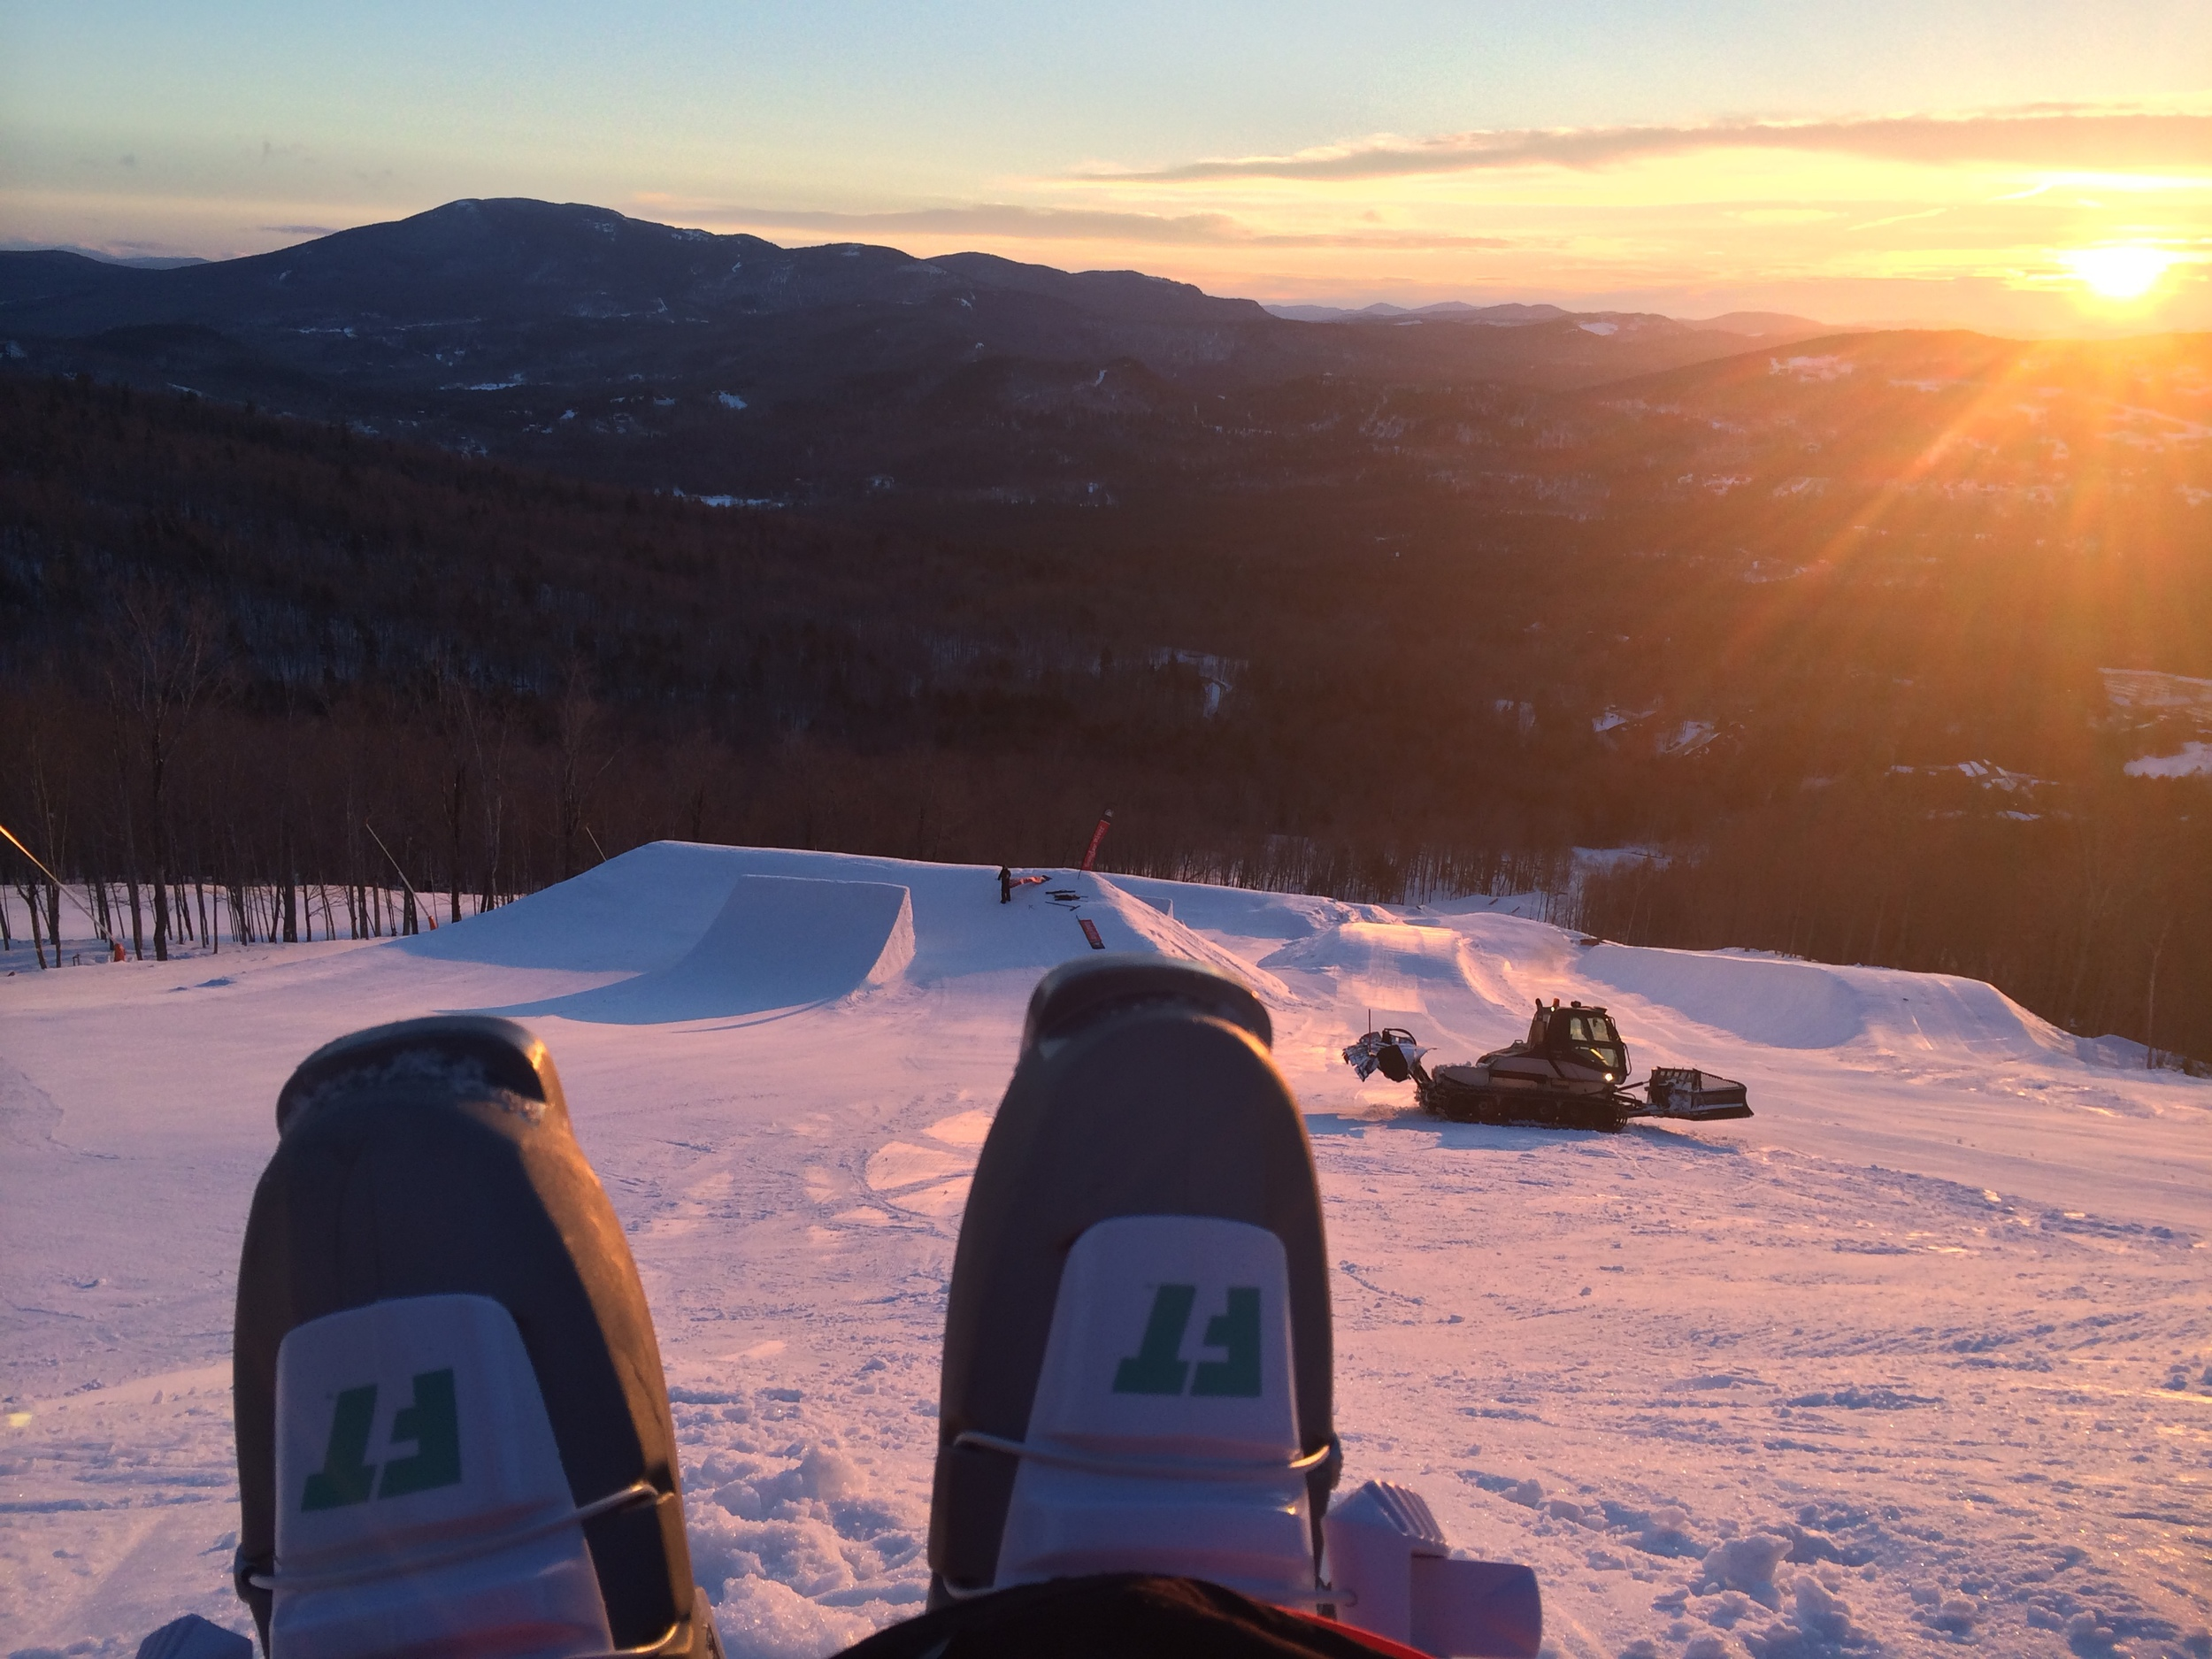 Such a fun sunrise shoot/day with Ski The East